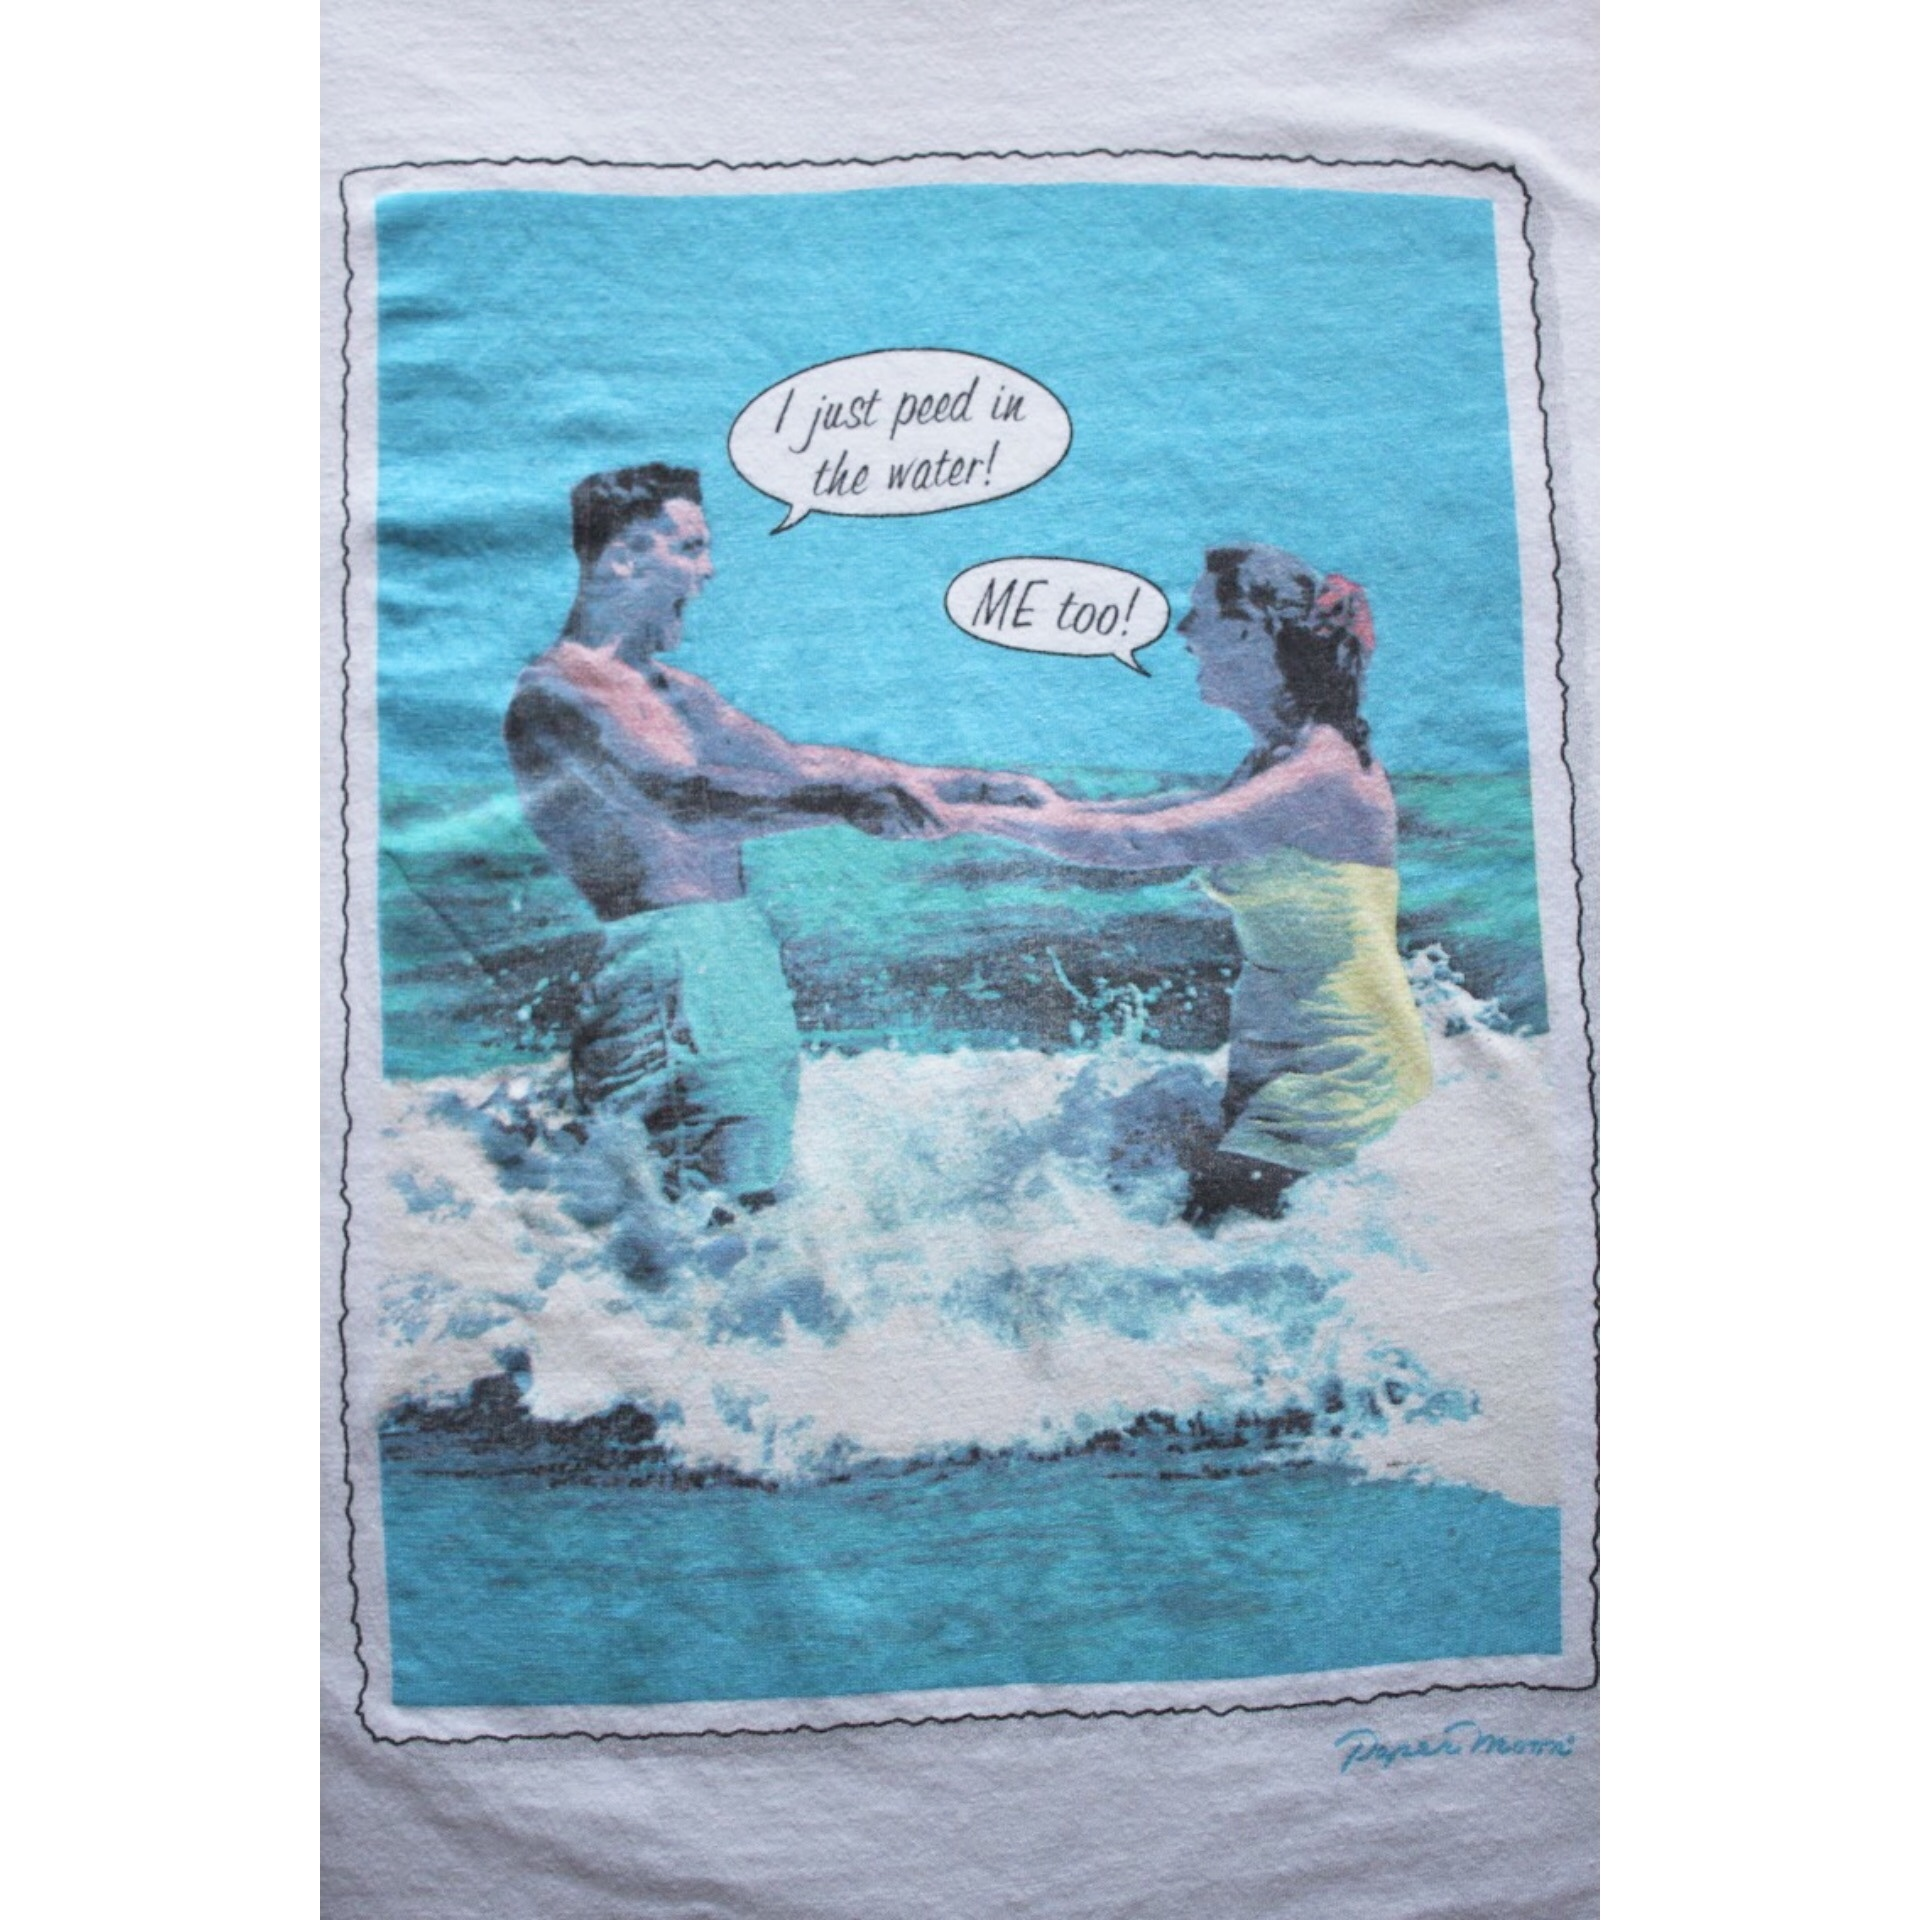 90s Funny photo t shirt